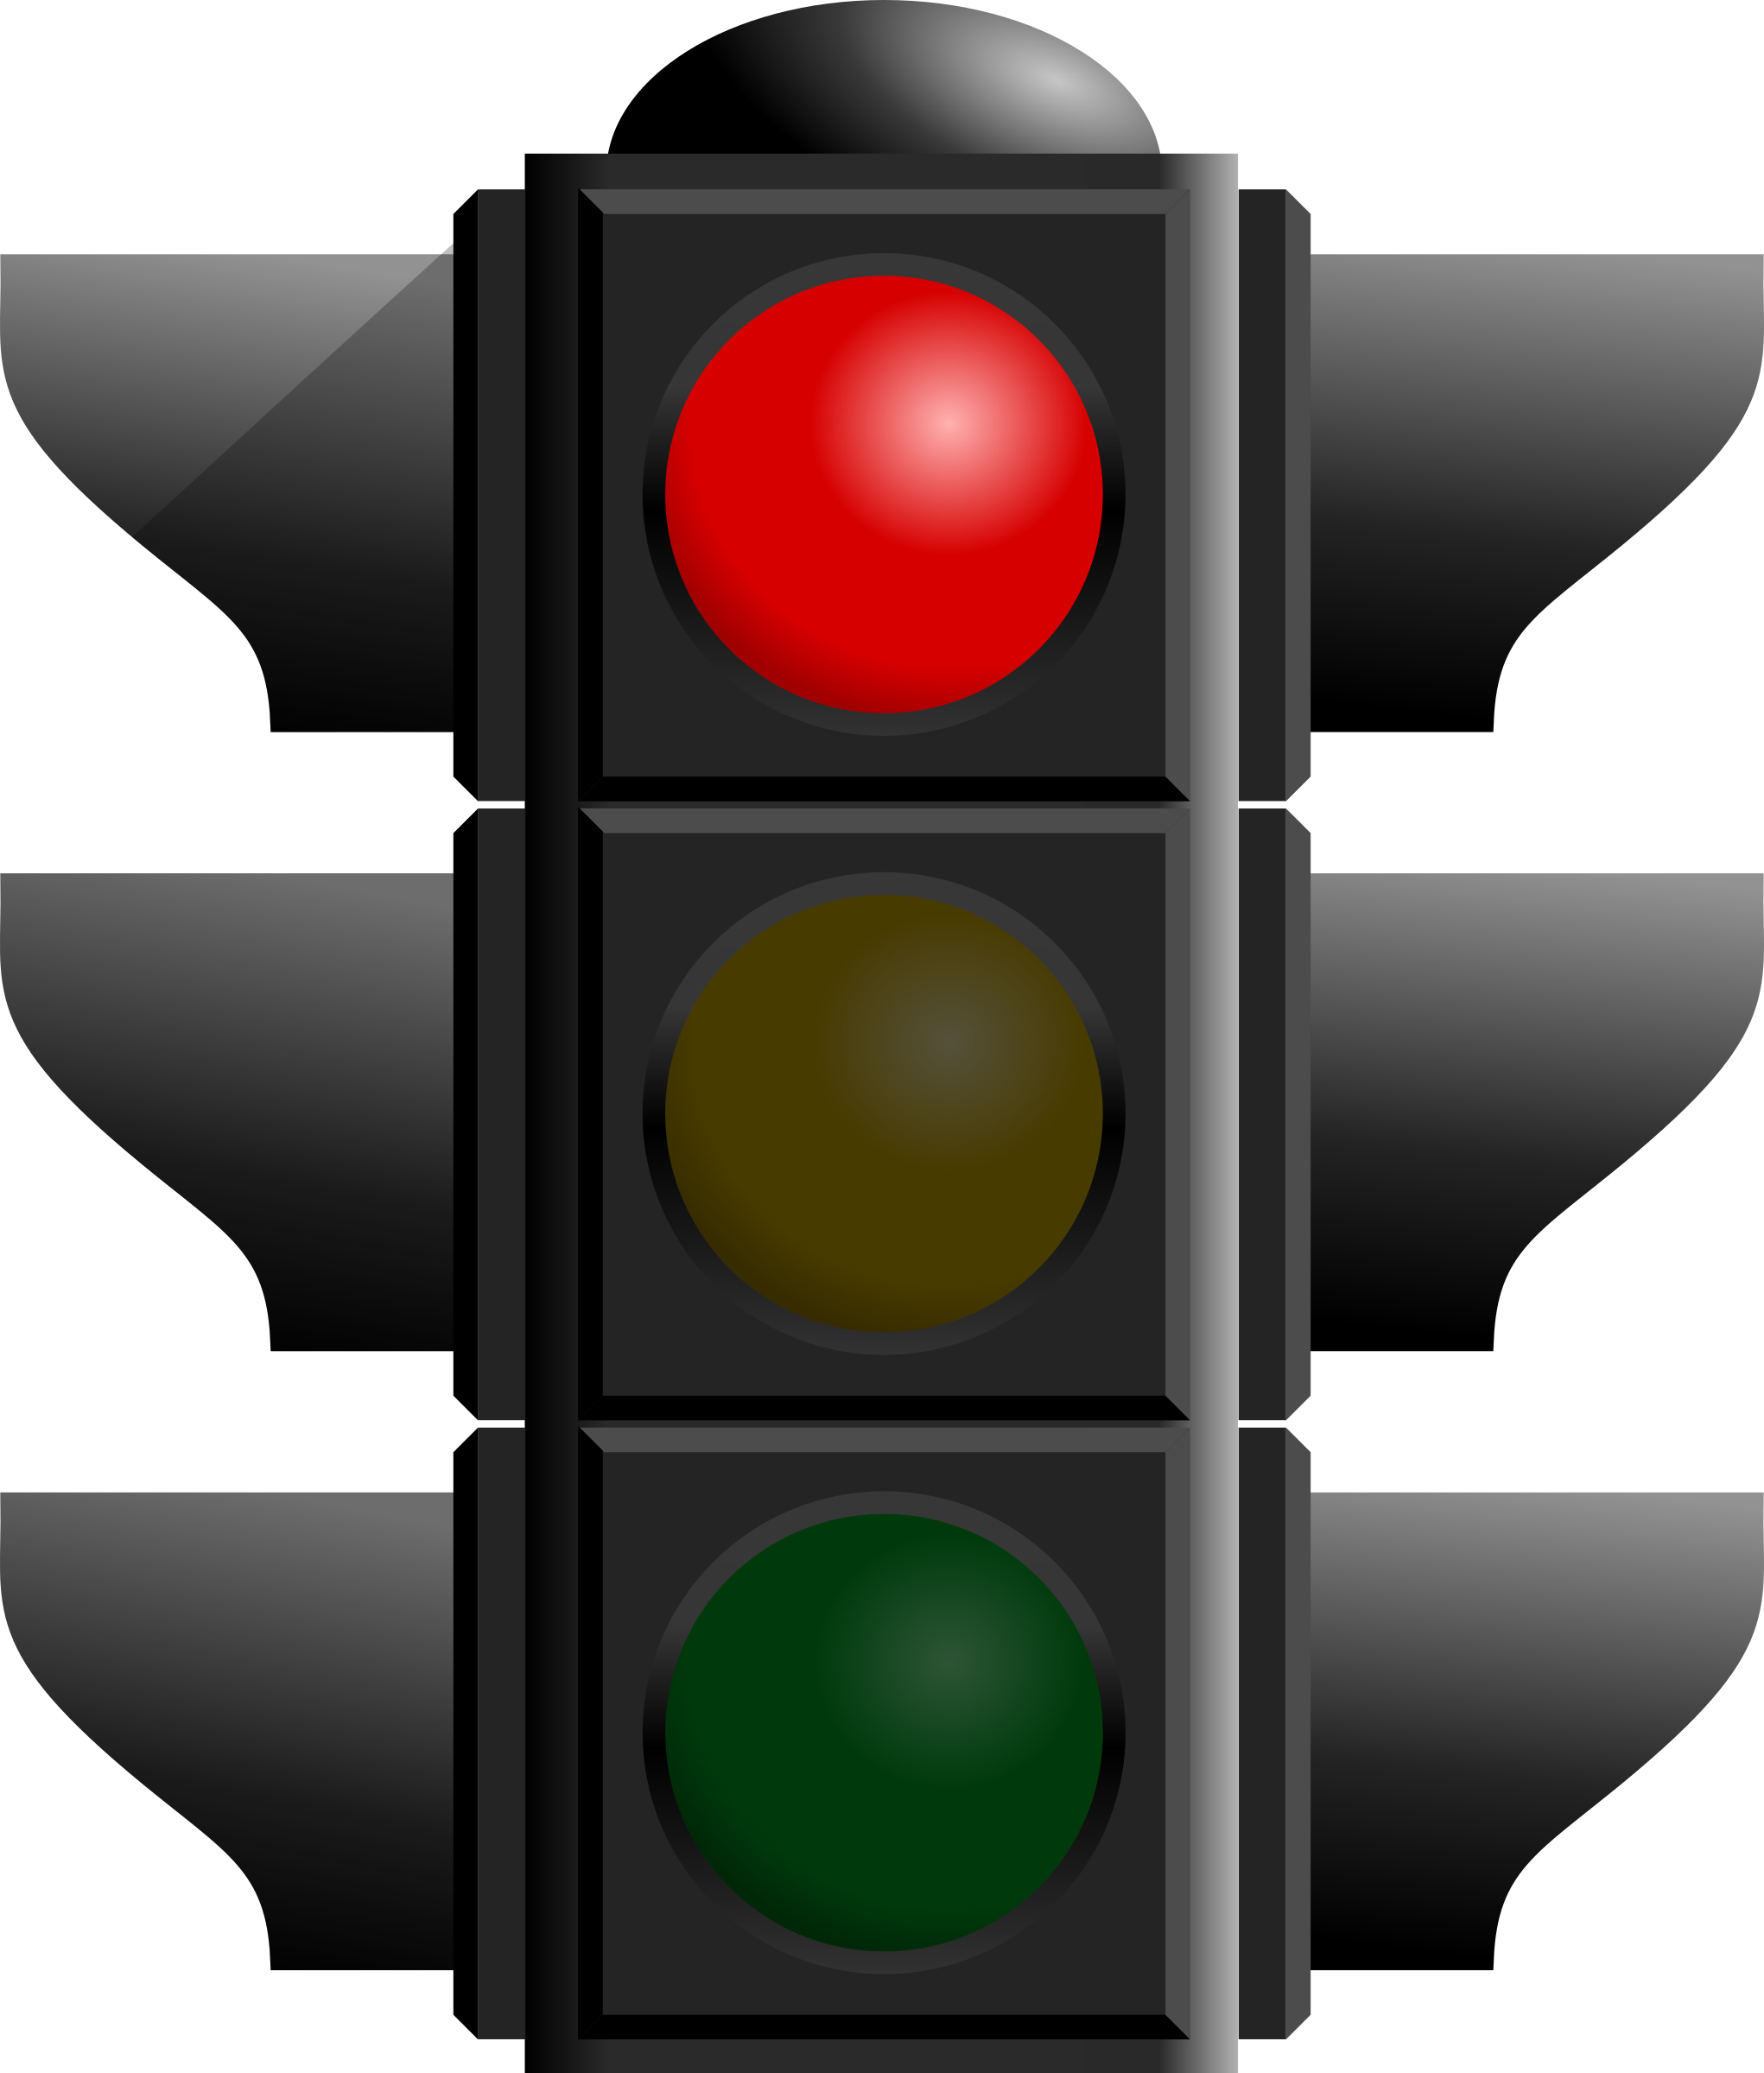 traffic light red dan ge 01 by Anonymous